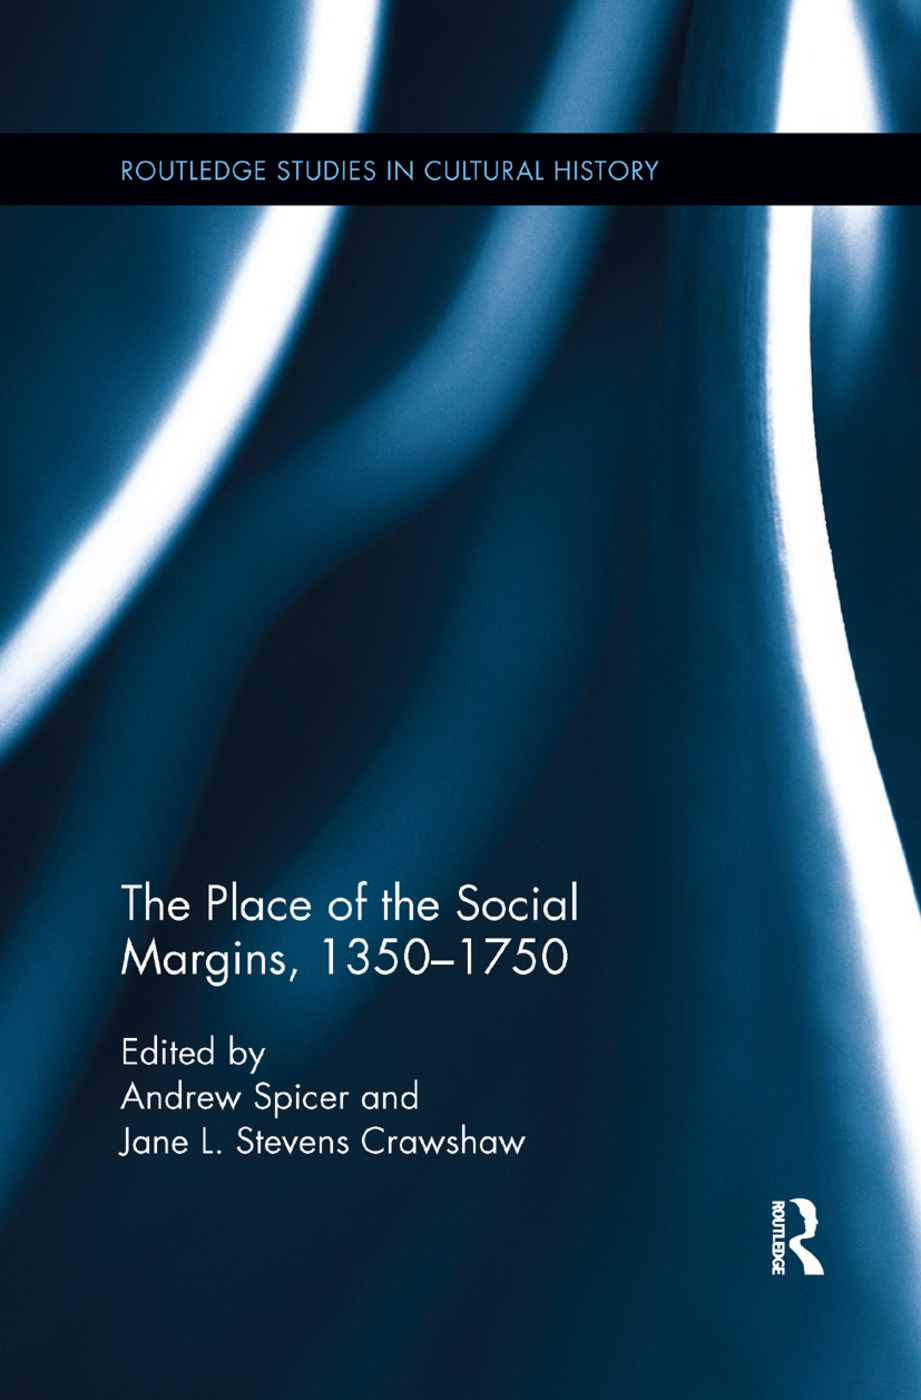 The Place of the Social Margins, 1350-1750